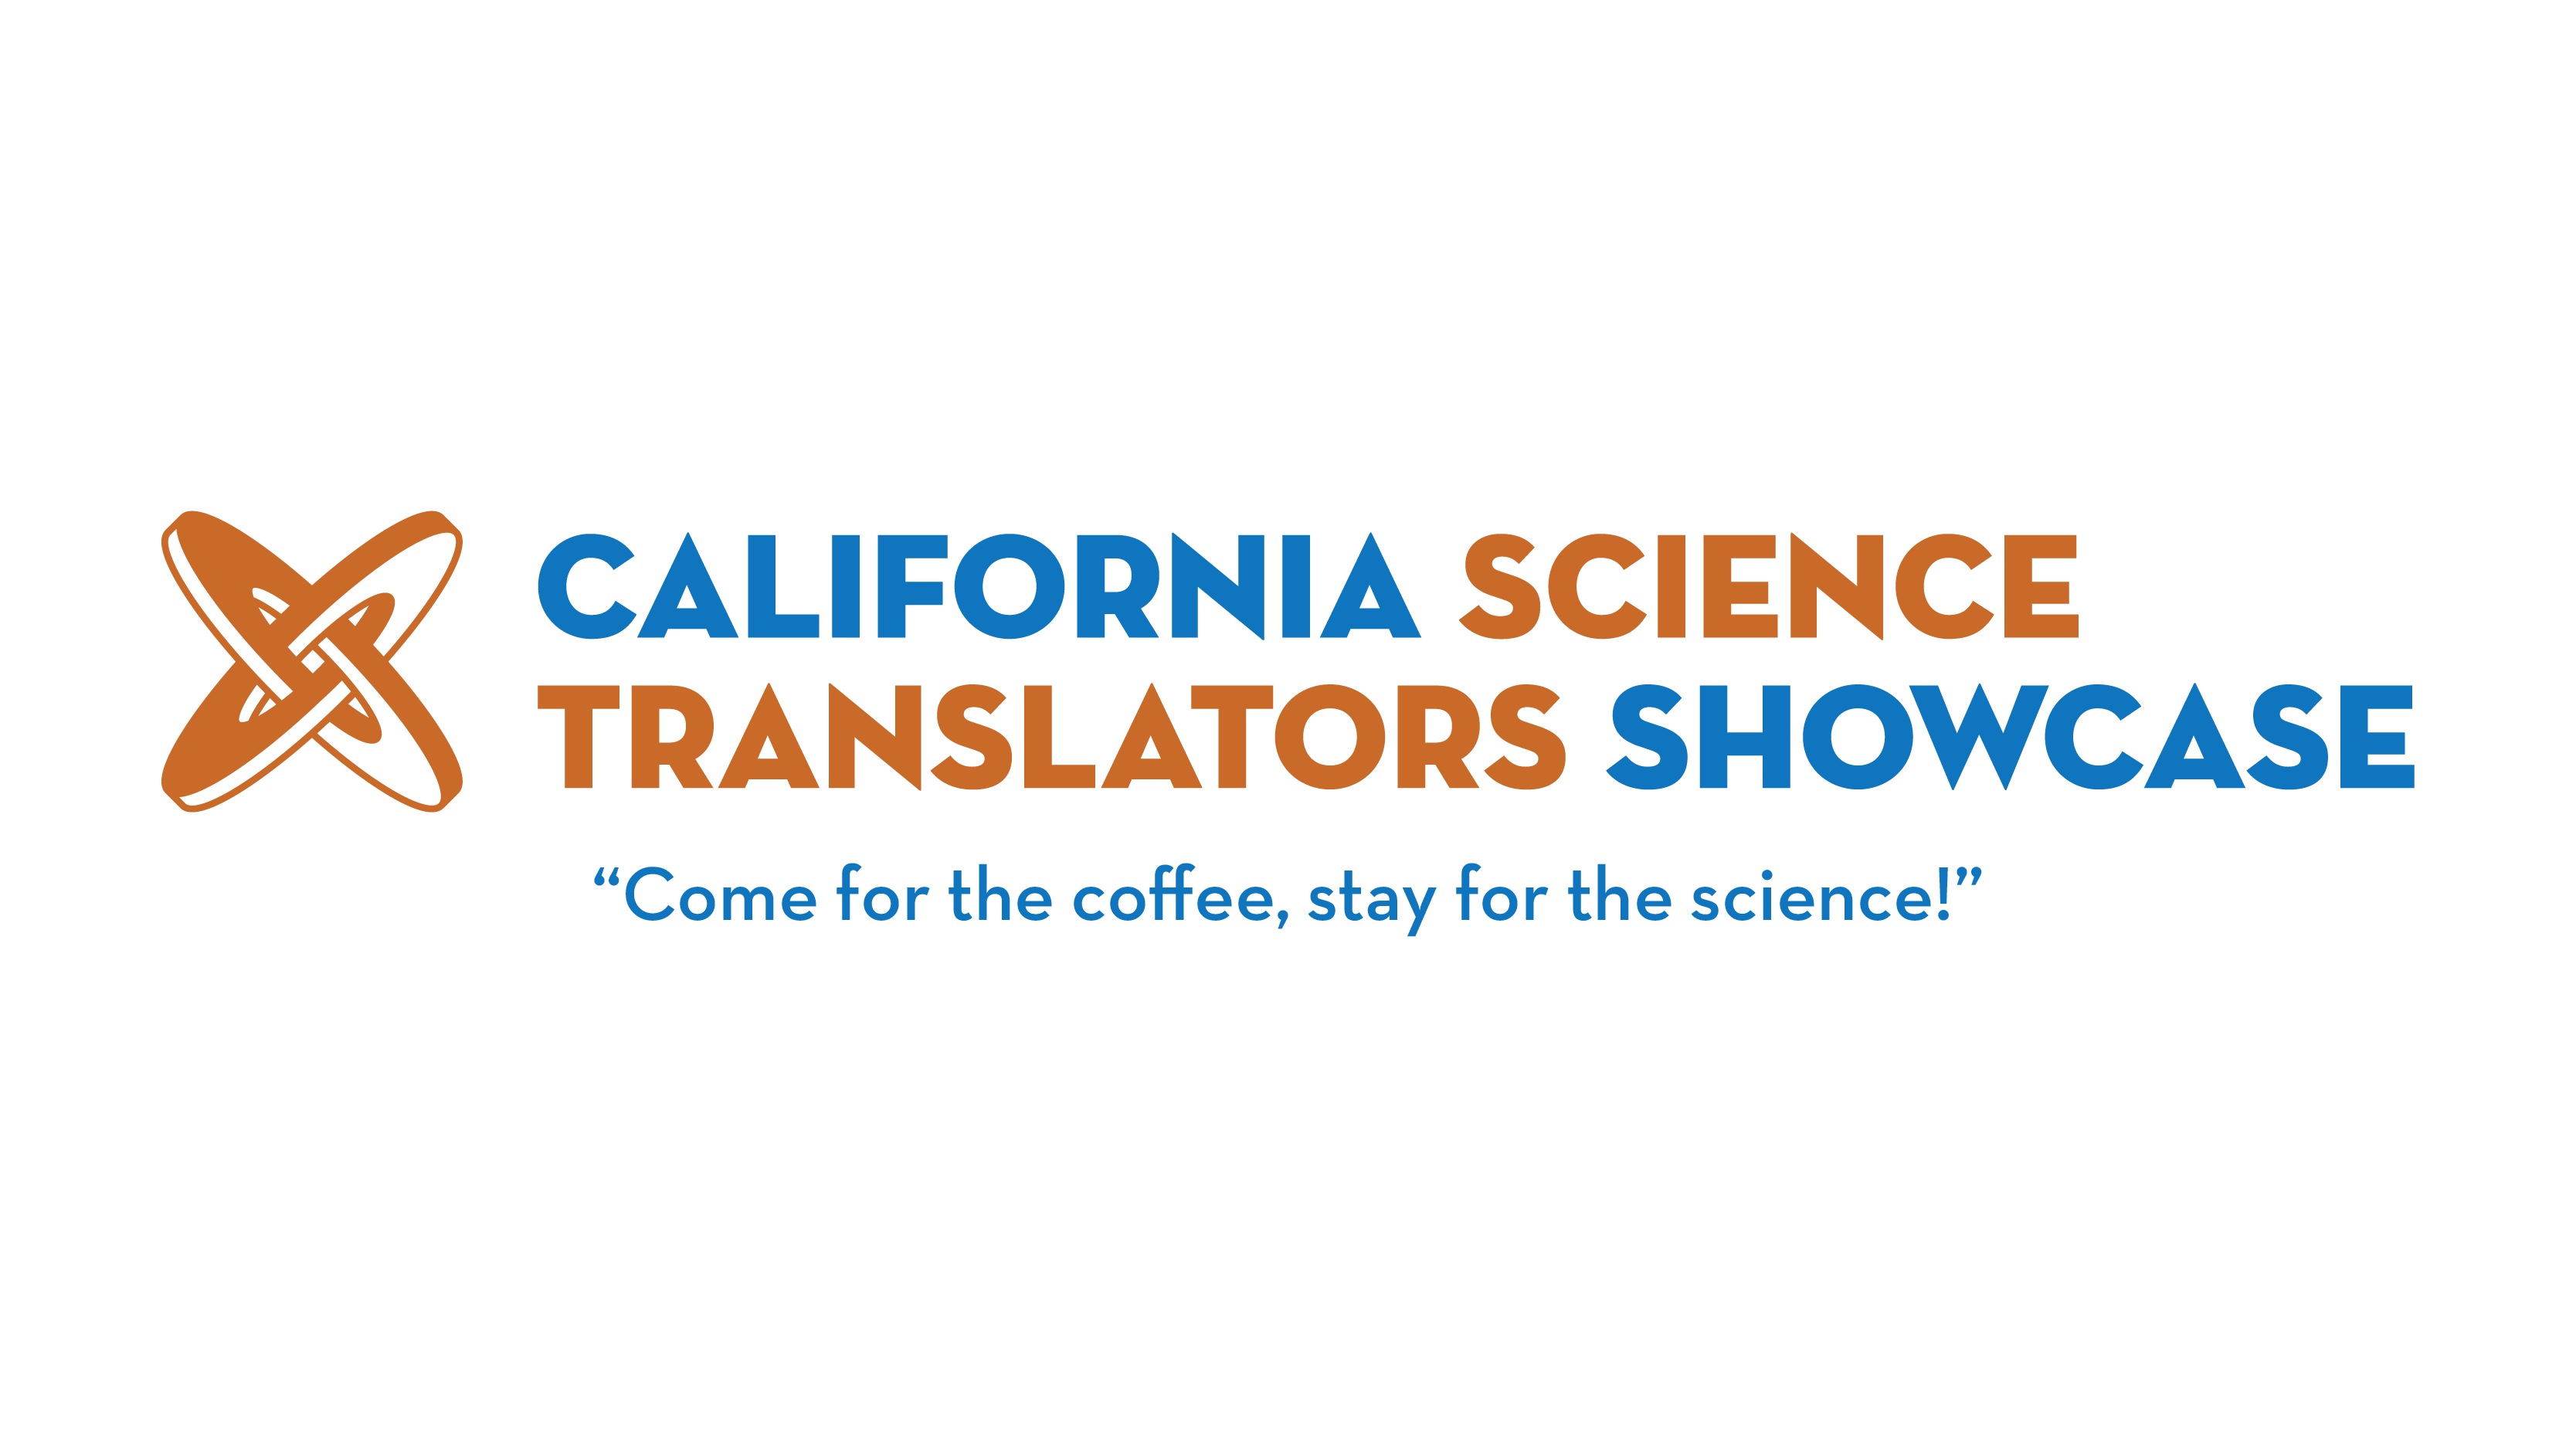 ccst science translators showcase